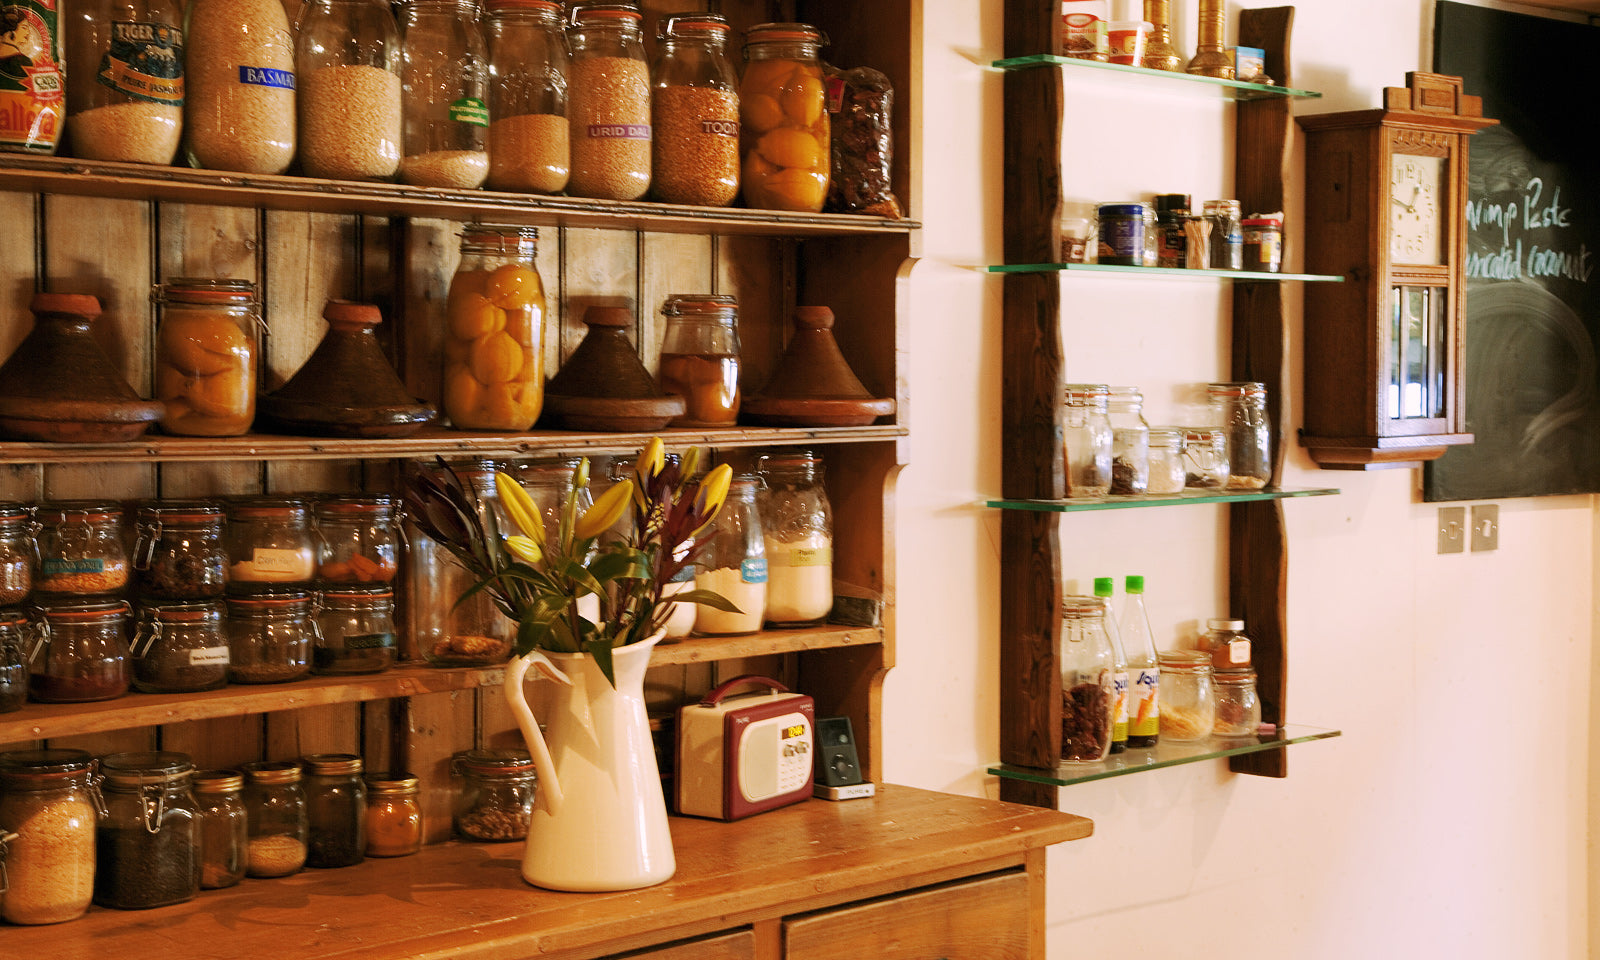 A stocked pantry adds a warm, homey feel to our kitchen venue.